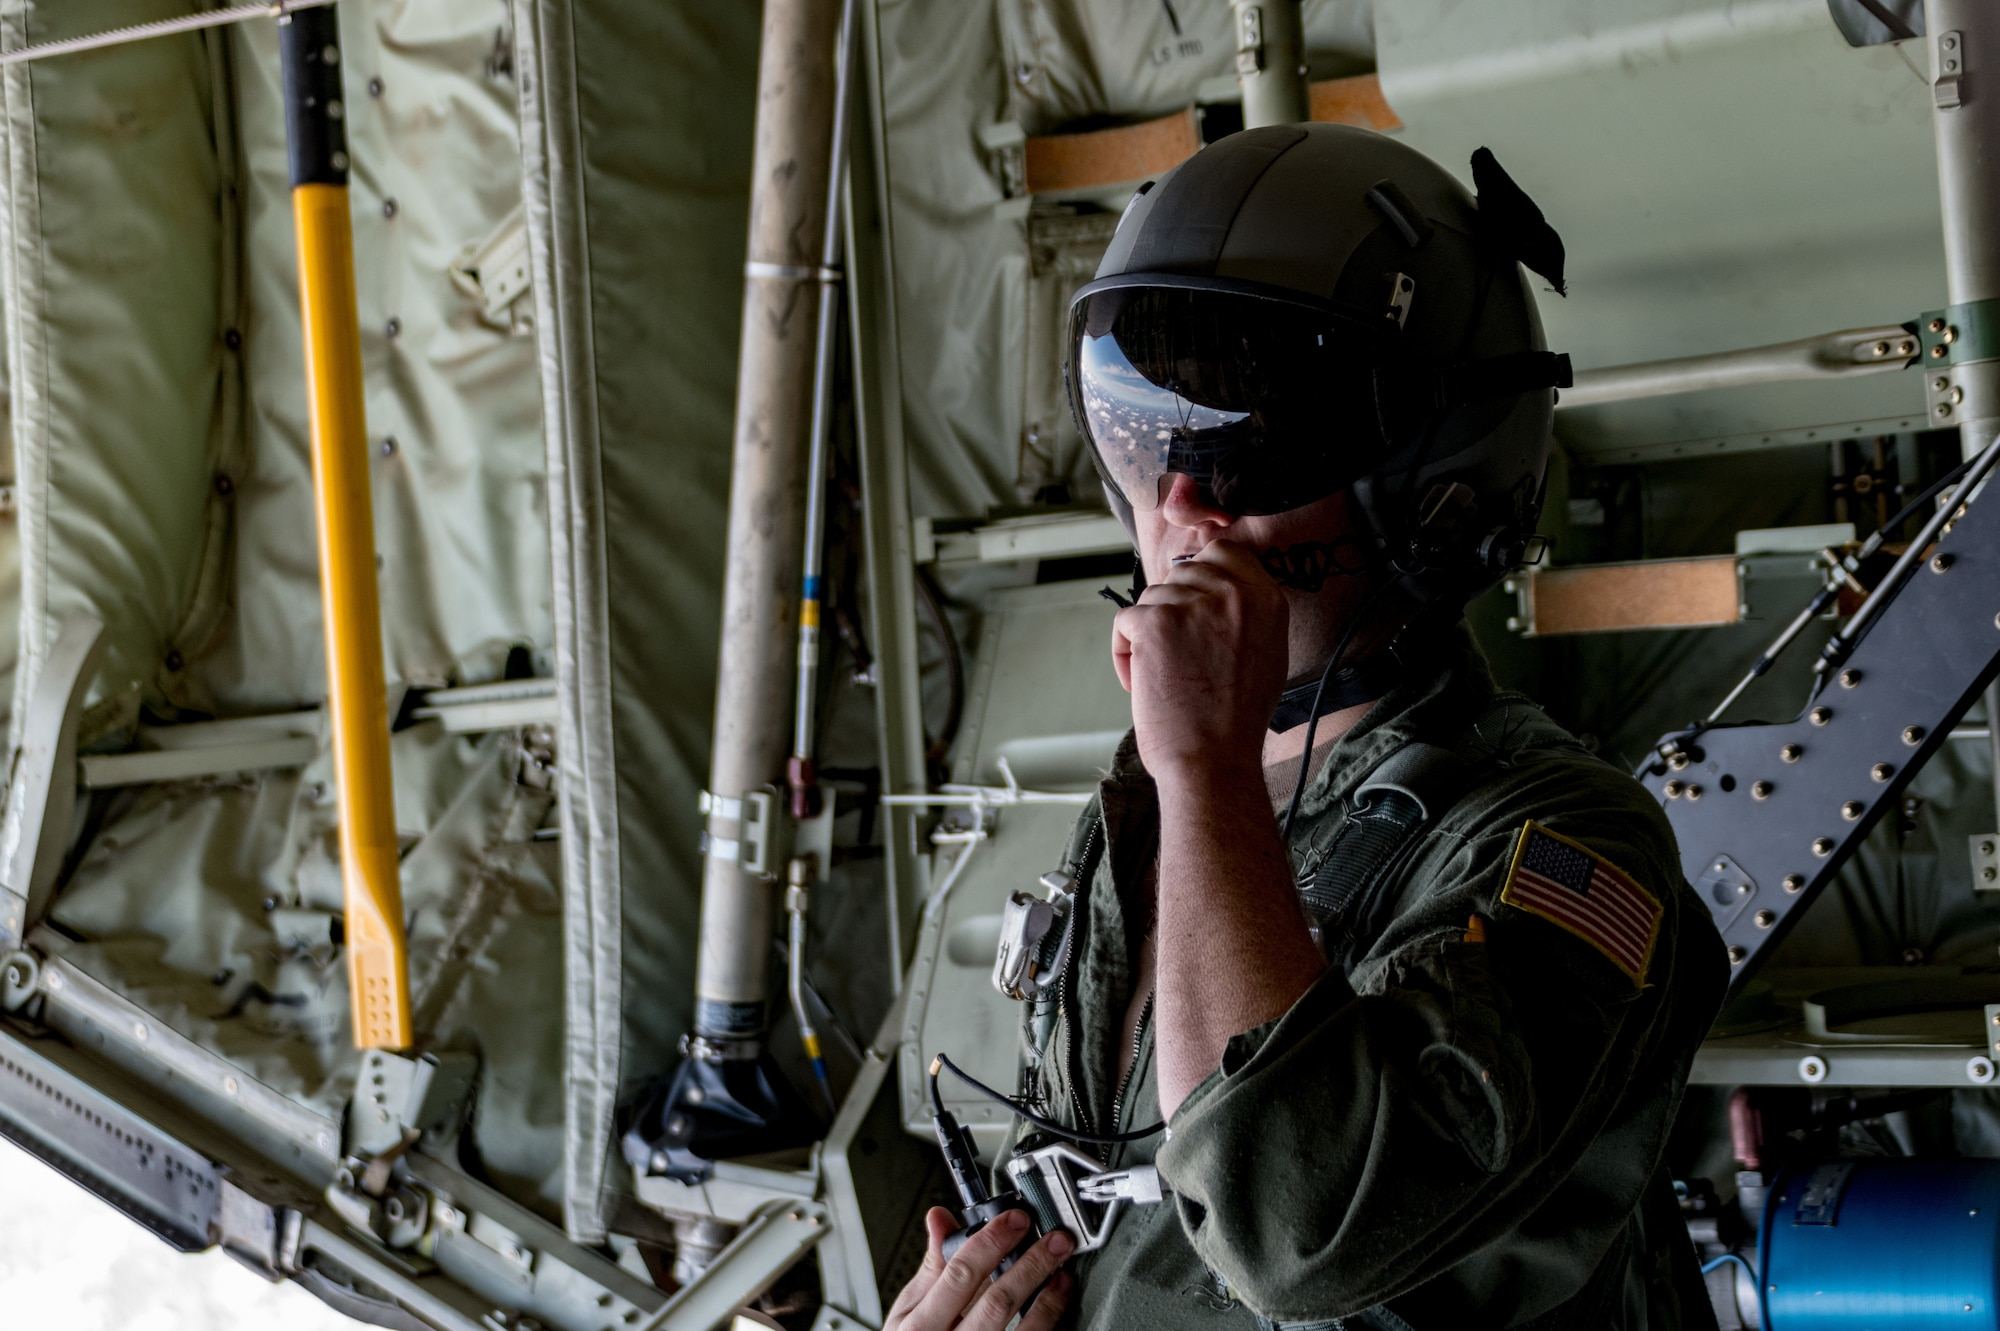 Air National Guard Senior Airman James Farless, a loadmaster from the 143d Airlift Wing, speaks into his headset, over a drop zone in Rhode Island, April 7, 2021. Aircrew from the 143 AW and U.S. Special Operations Forces partnered to perform high-altitude low-opening parachute jumps. Operating aircraft airdrop systems and supervising heavy equipment, CDS-type cargo, and paratroopers exiting the aircraft are critical functions of a loadmaster.